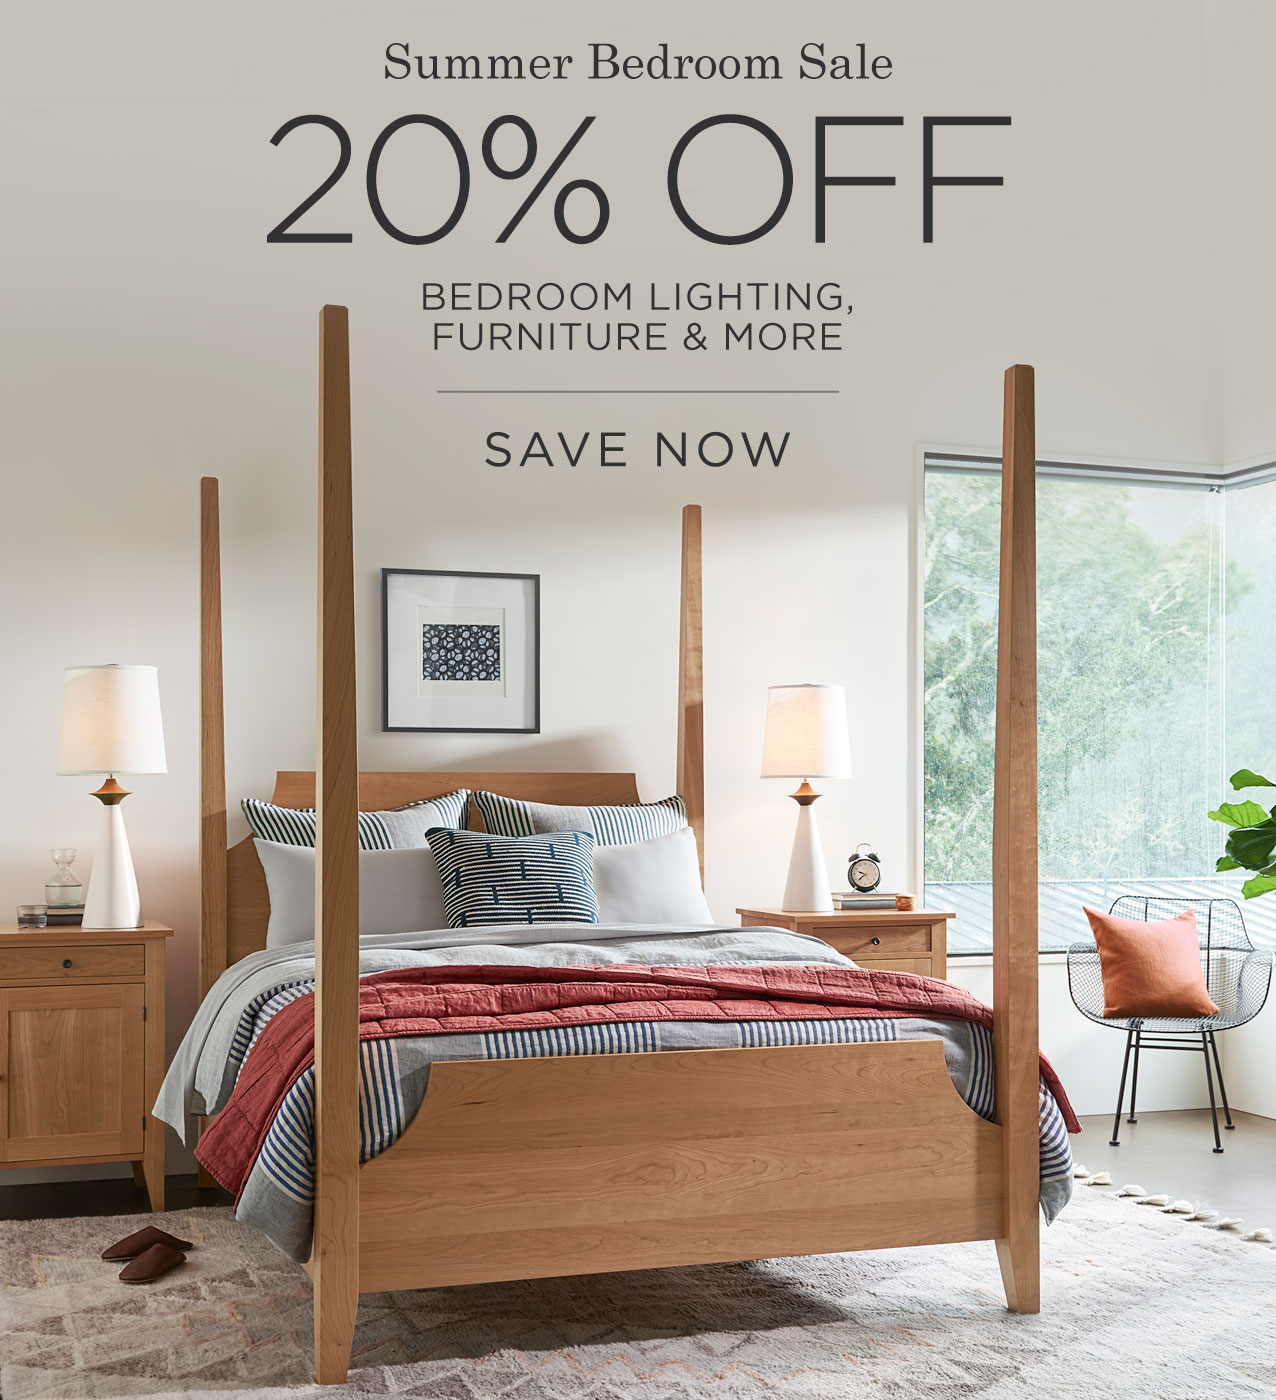 Shop the Summer Bedroom Sale